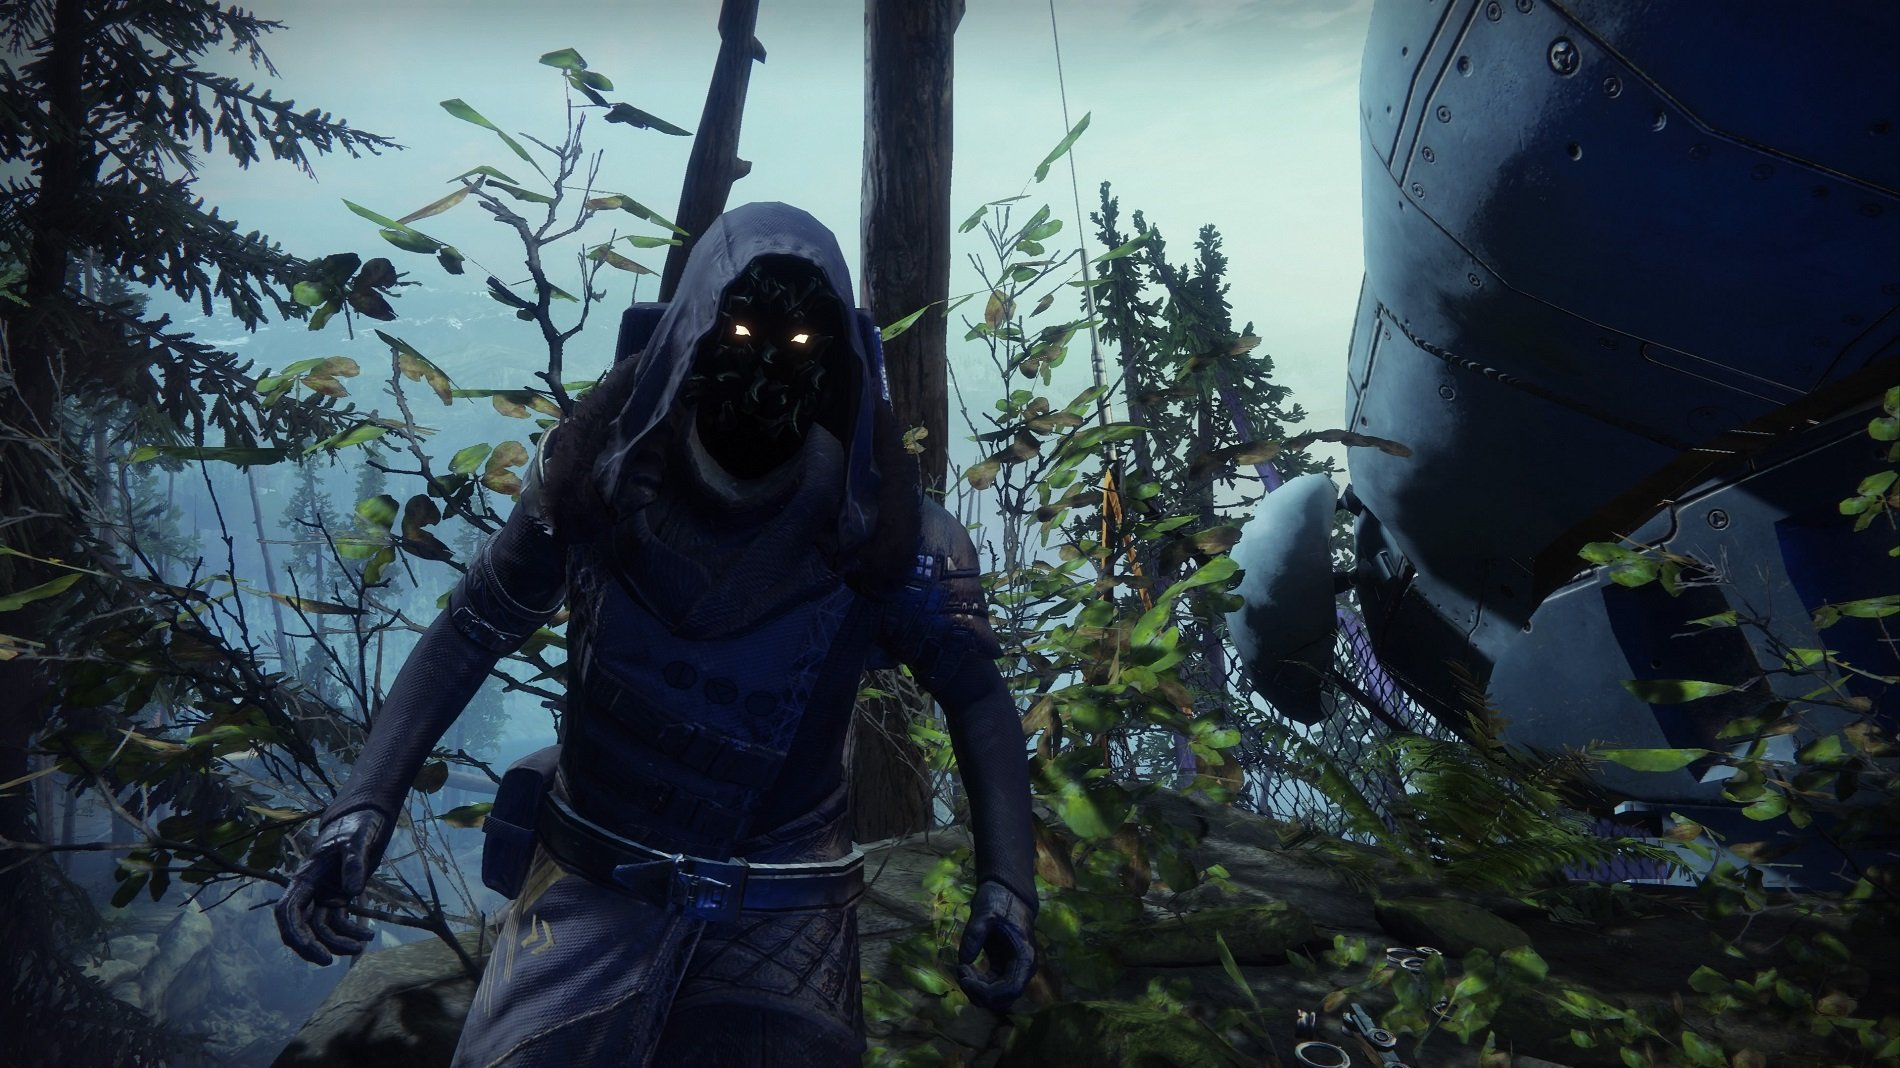 Where to find Xur in Destiny 2 - April 17, 2020